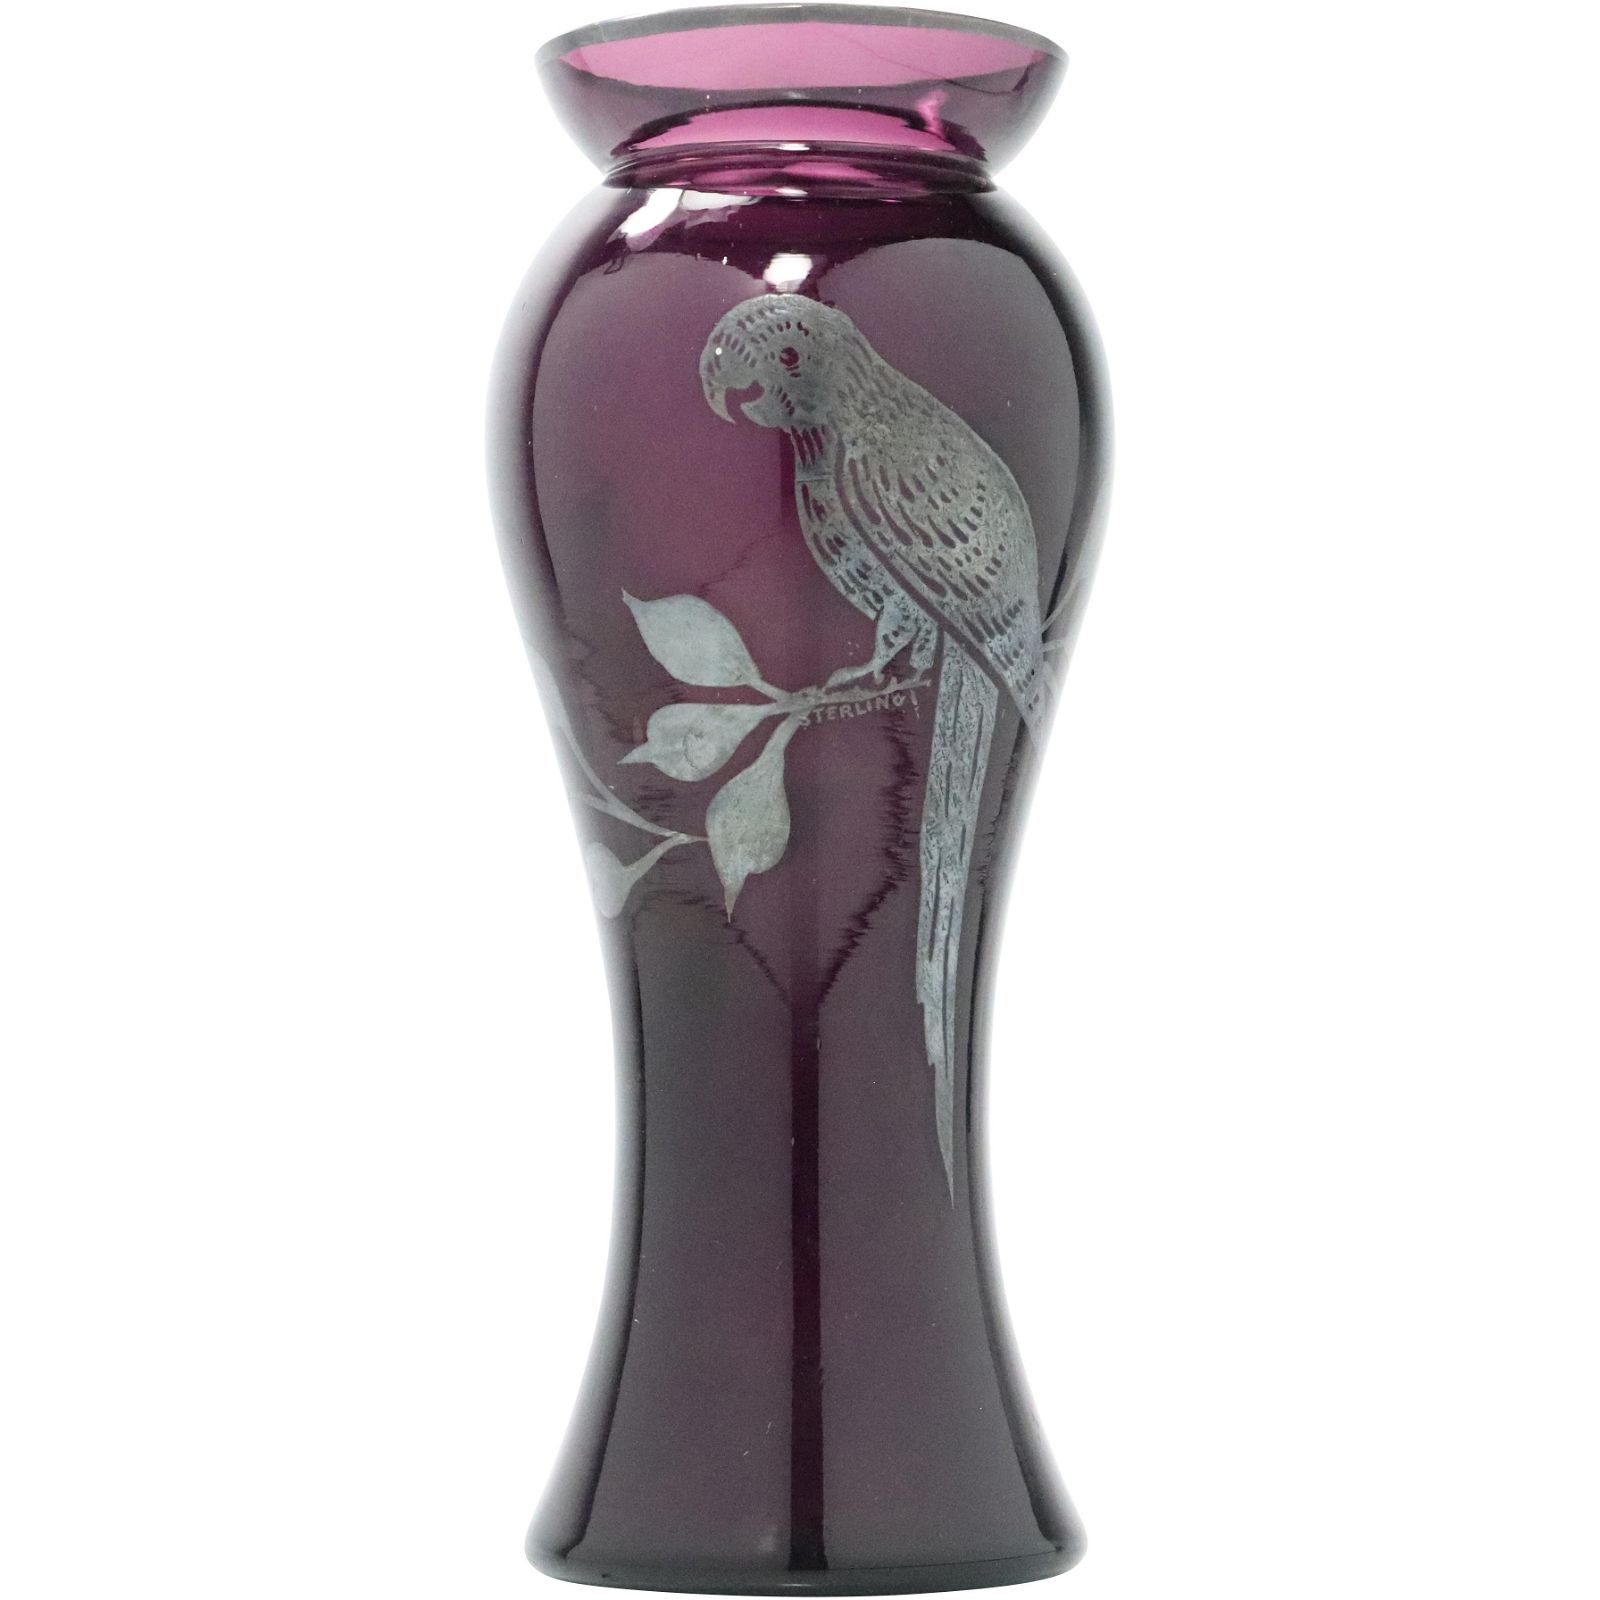 Amethyst Vase with Sterling Silver Overlay Parrot